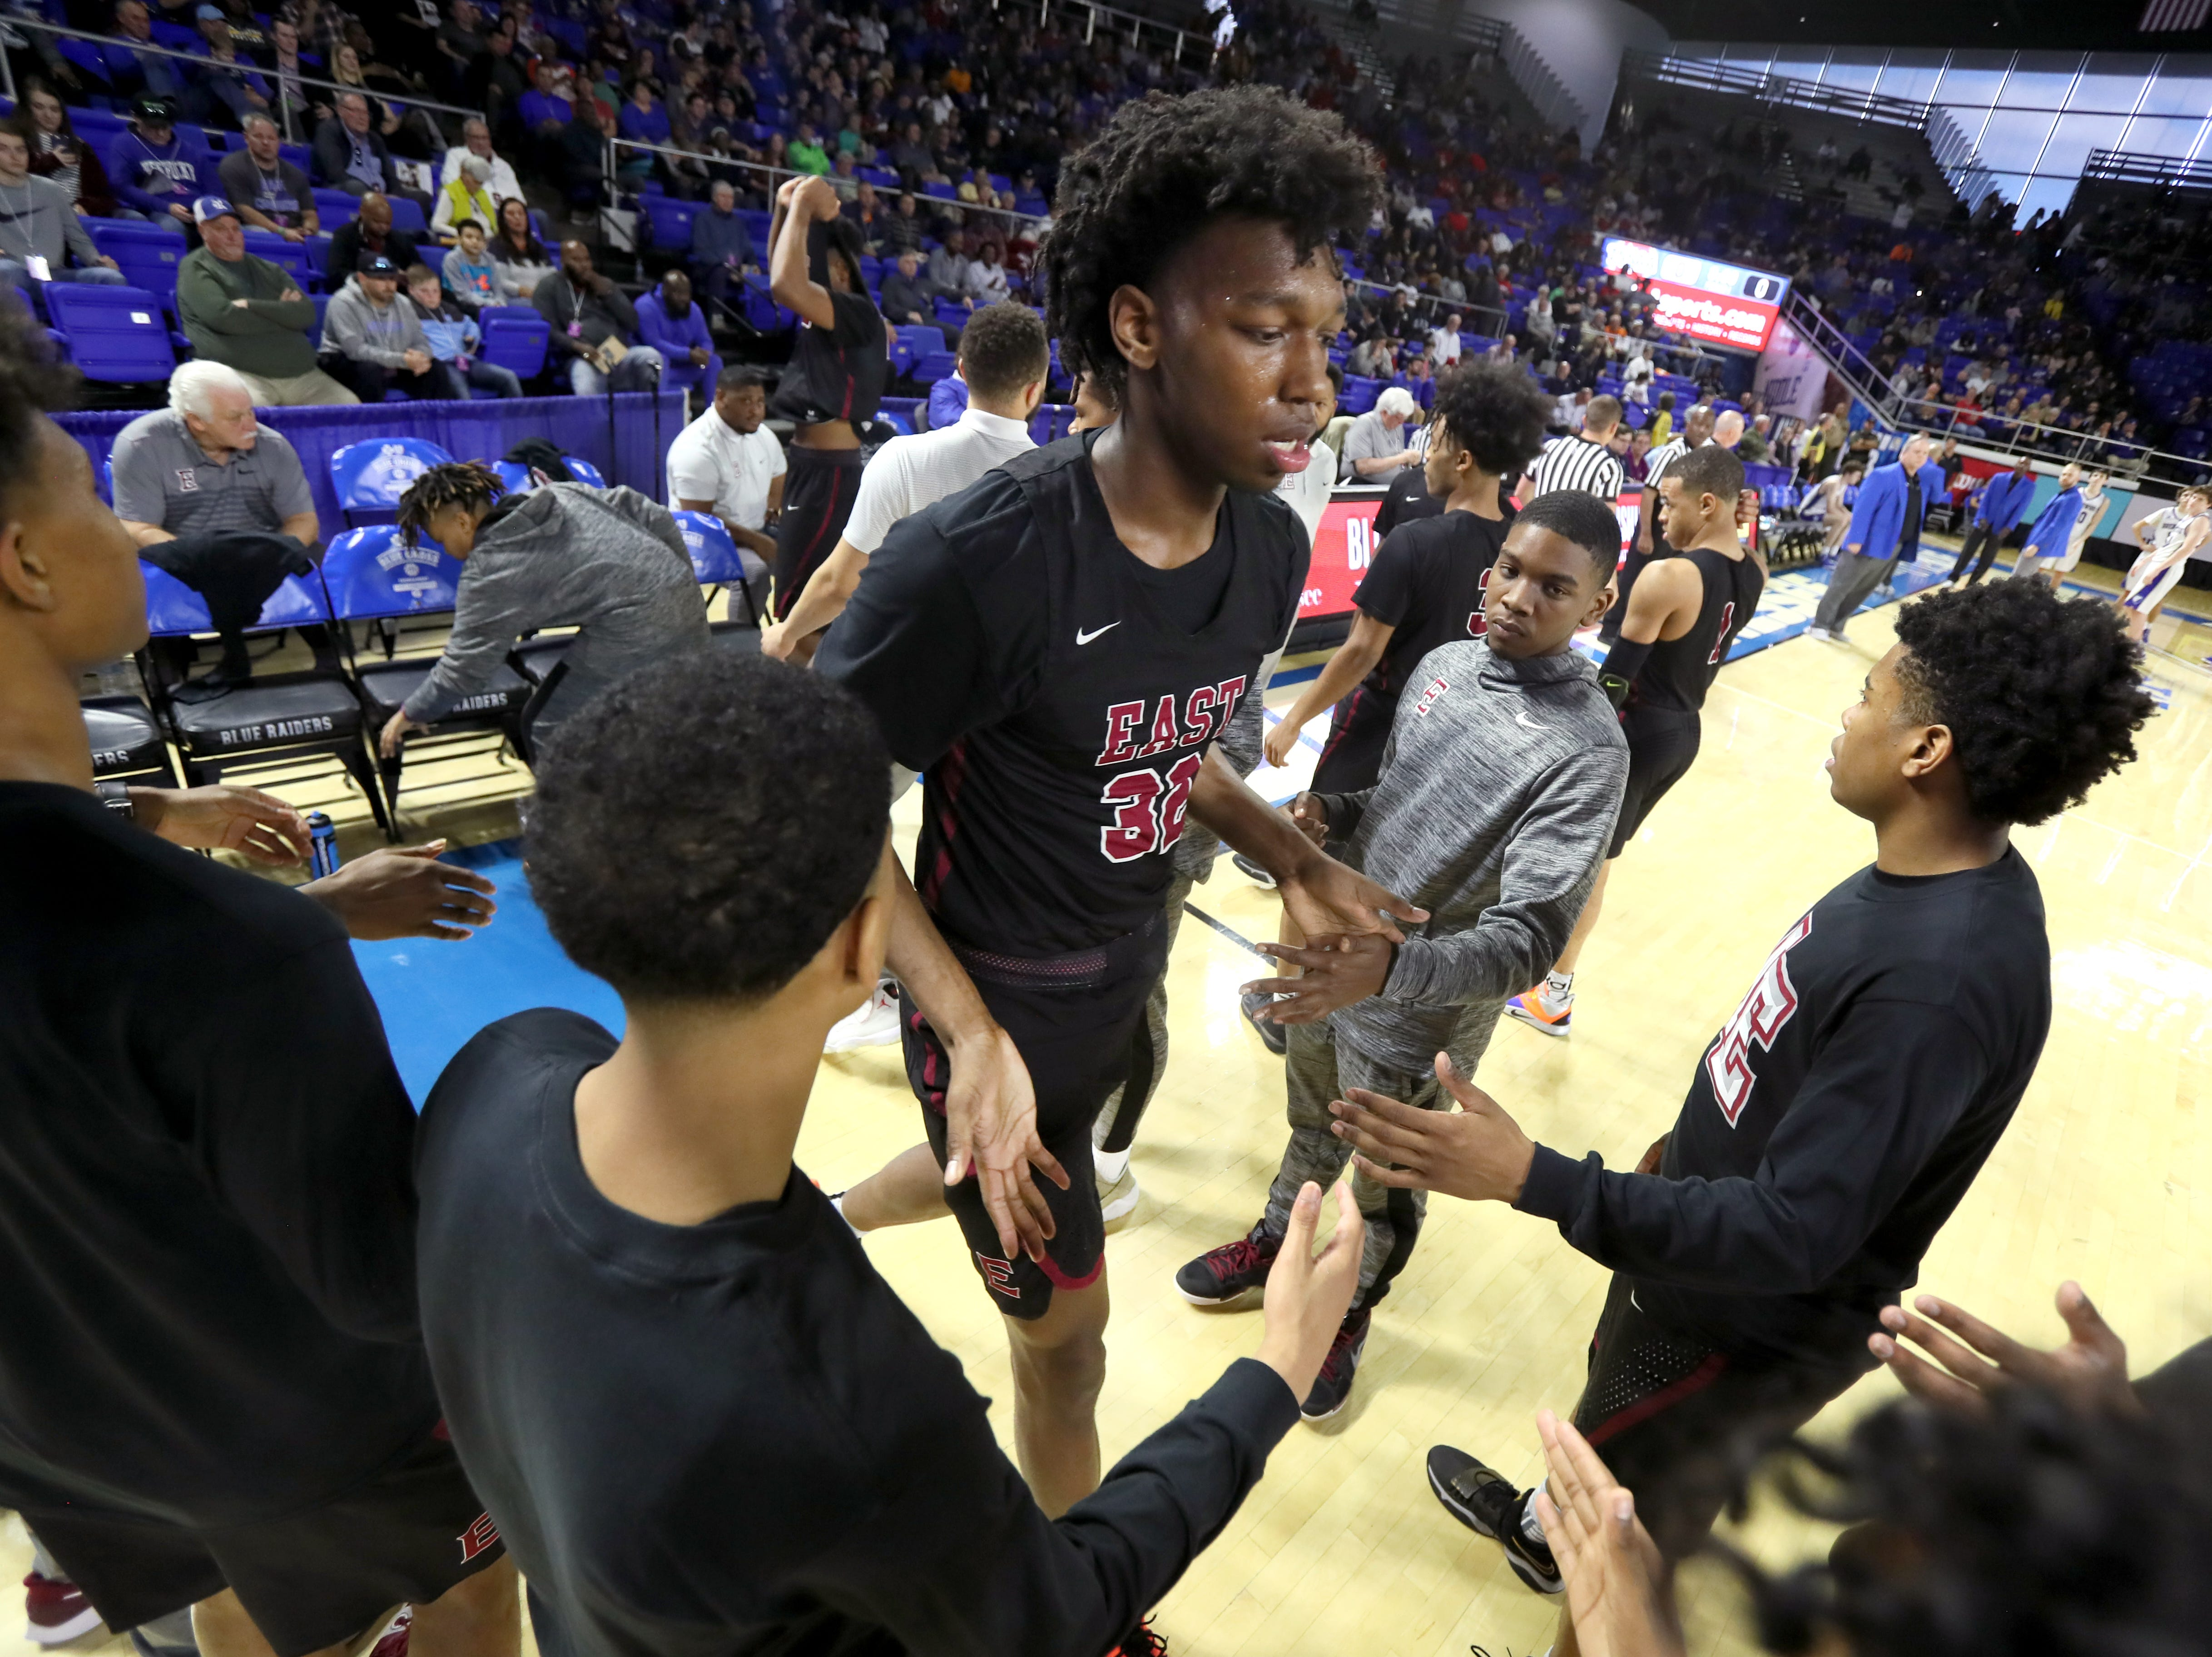 Memphis East's James Wiseman is introduced before their game against Brentwood during the Class AAA boys basketball state semifinal at the Murphy Center in Murfreesboro, Tenn. on Friday, March 15, 2019.